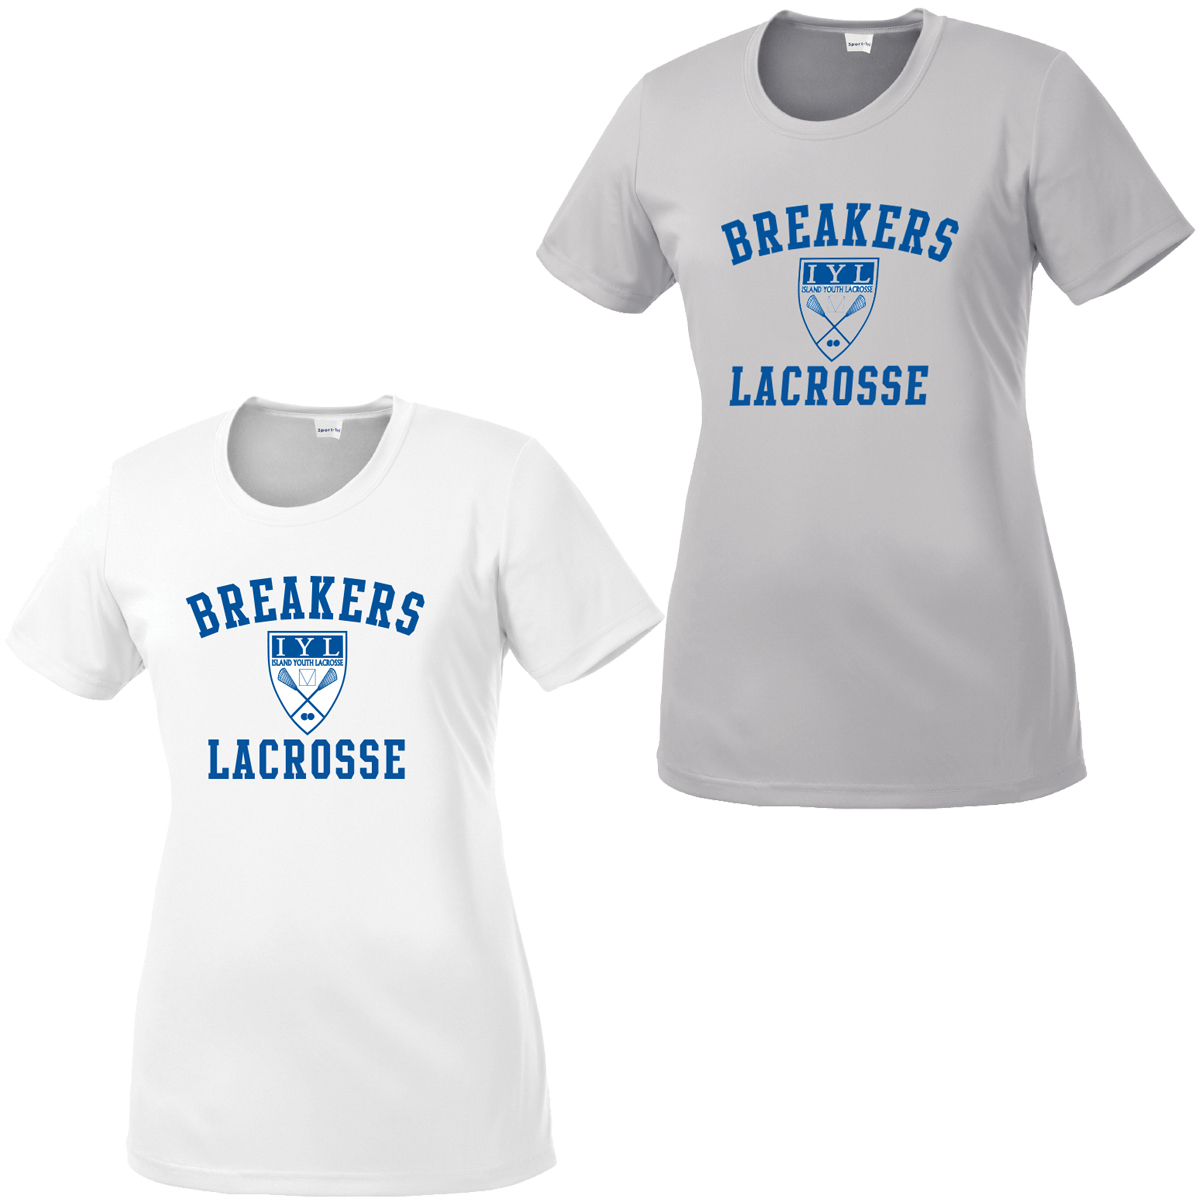 Island Youth Lacrosse - Women's Short Sleeve Tech Tee